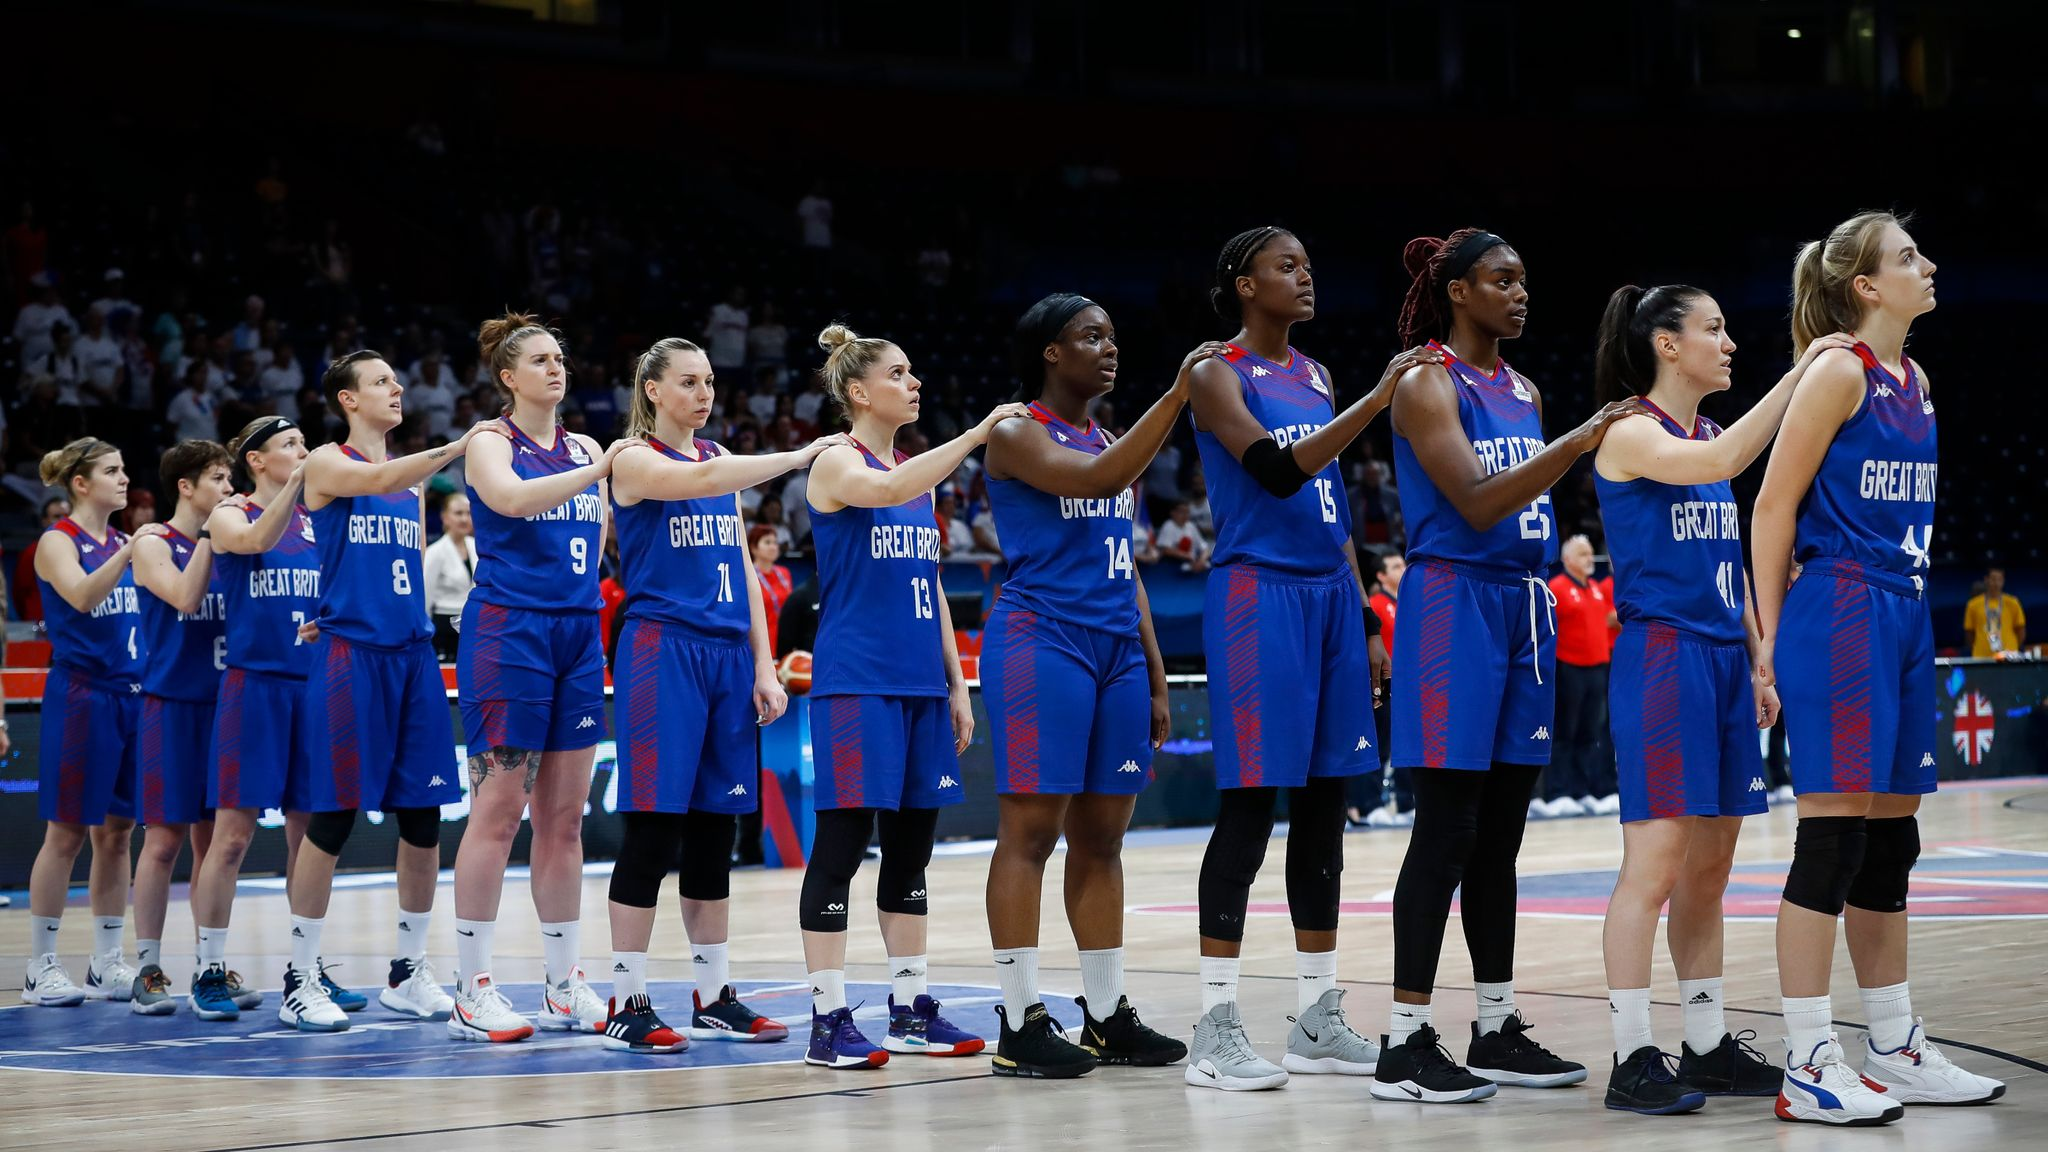 Coronavirus in China forces Great Britain women's basketball team into venue switch